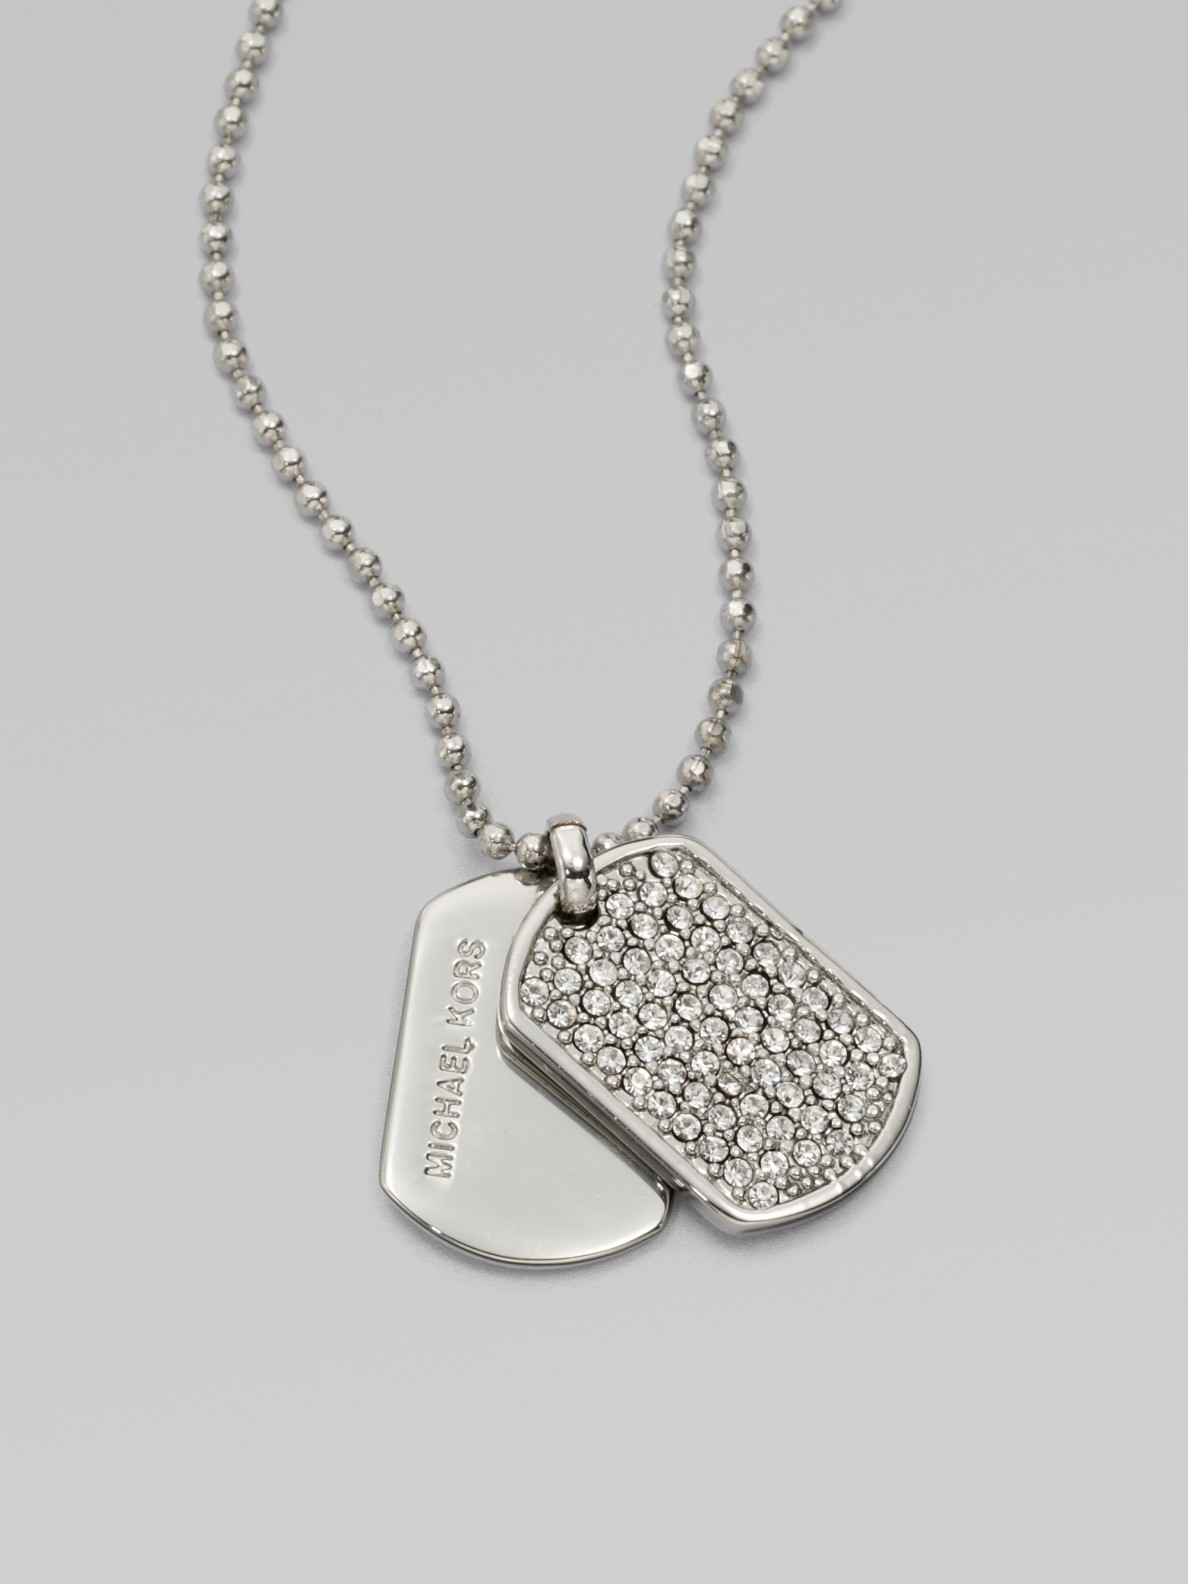 Lyst michael kors pav dog tag pendant necklace in metallic gallery aloadofball Images